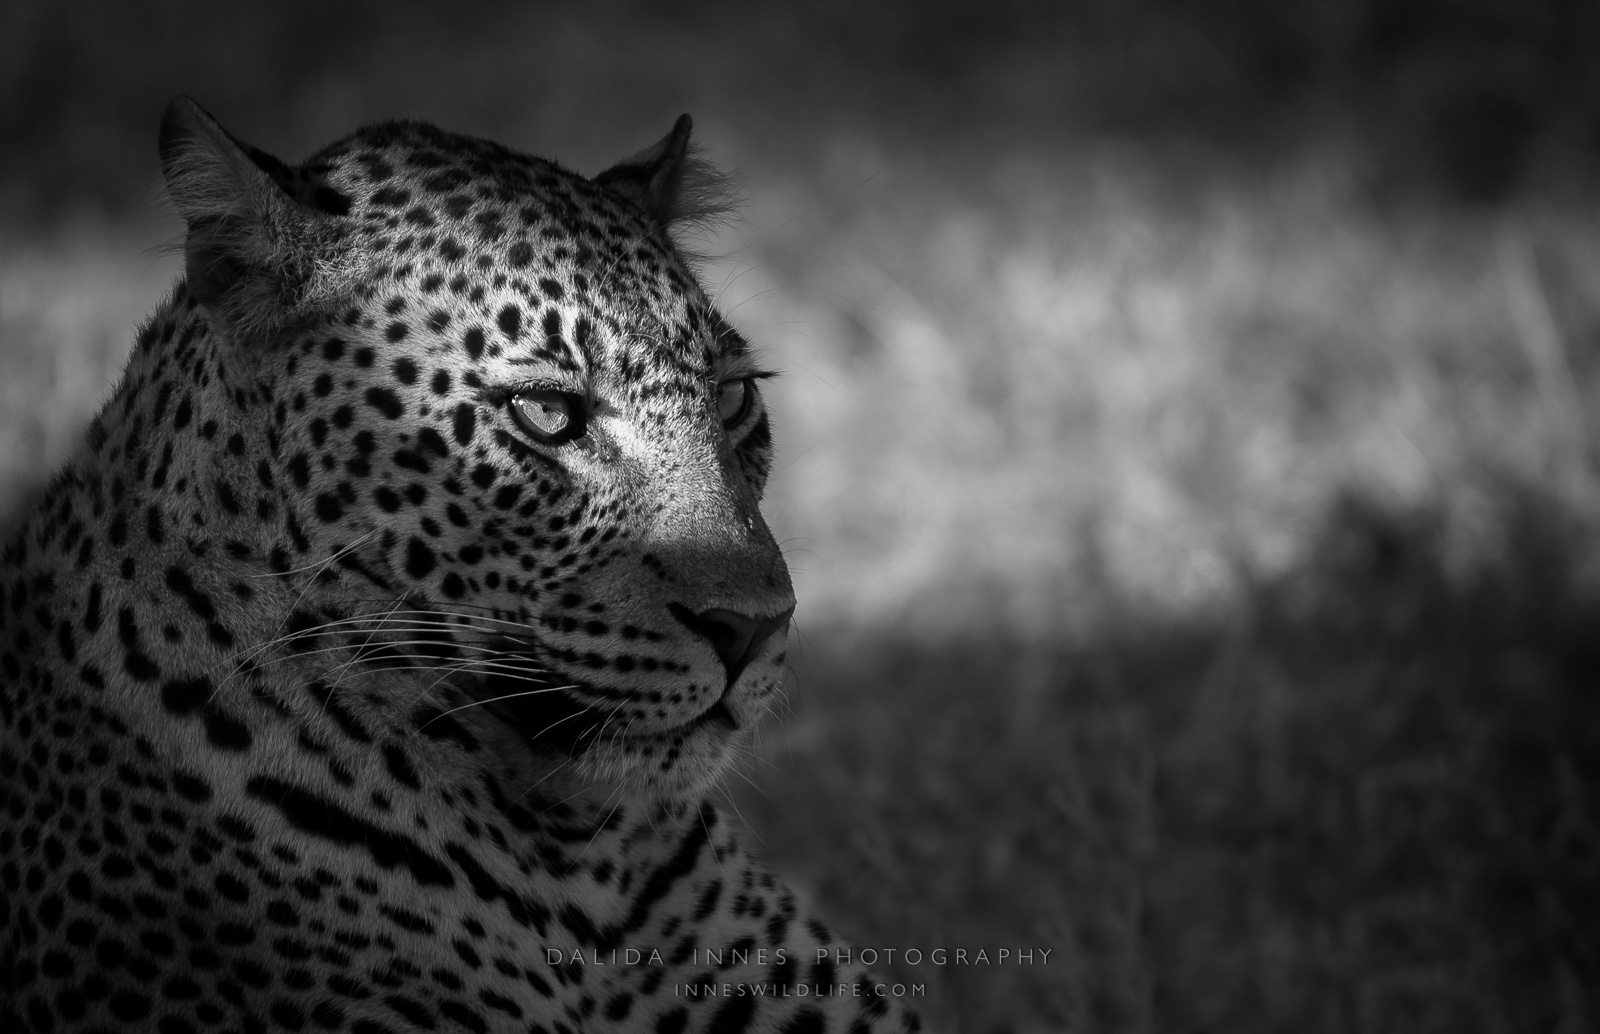 Beyond the Light by Dalida Innes Wildlife Photography